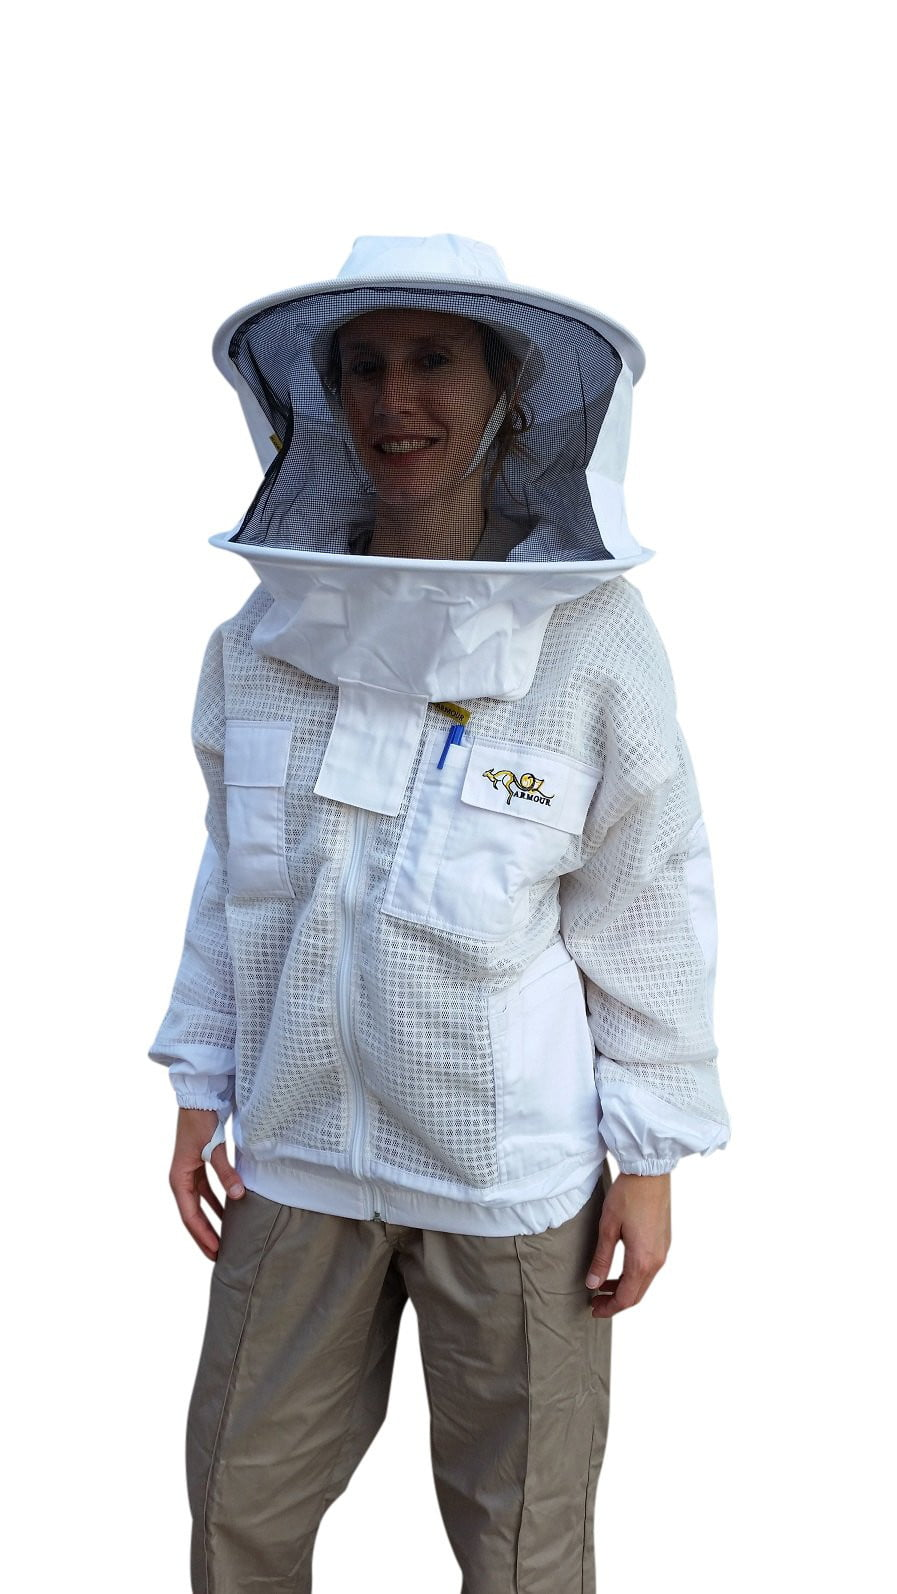 OZ ARMOUR 3 Layer Mesh Ventilated Beekeeping Jacket With Round Hat Veil,Beekeeping,beekeeping gear,oz armour